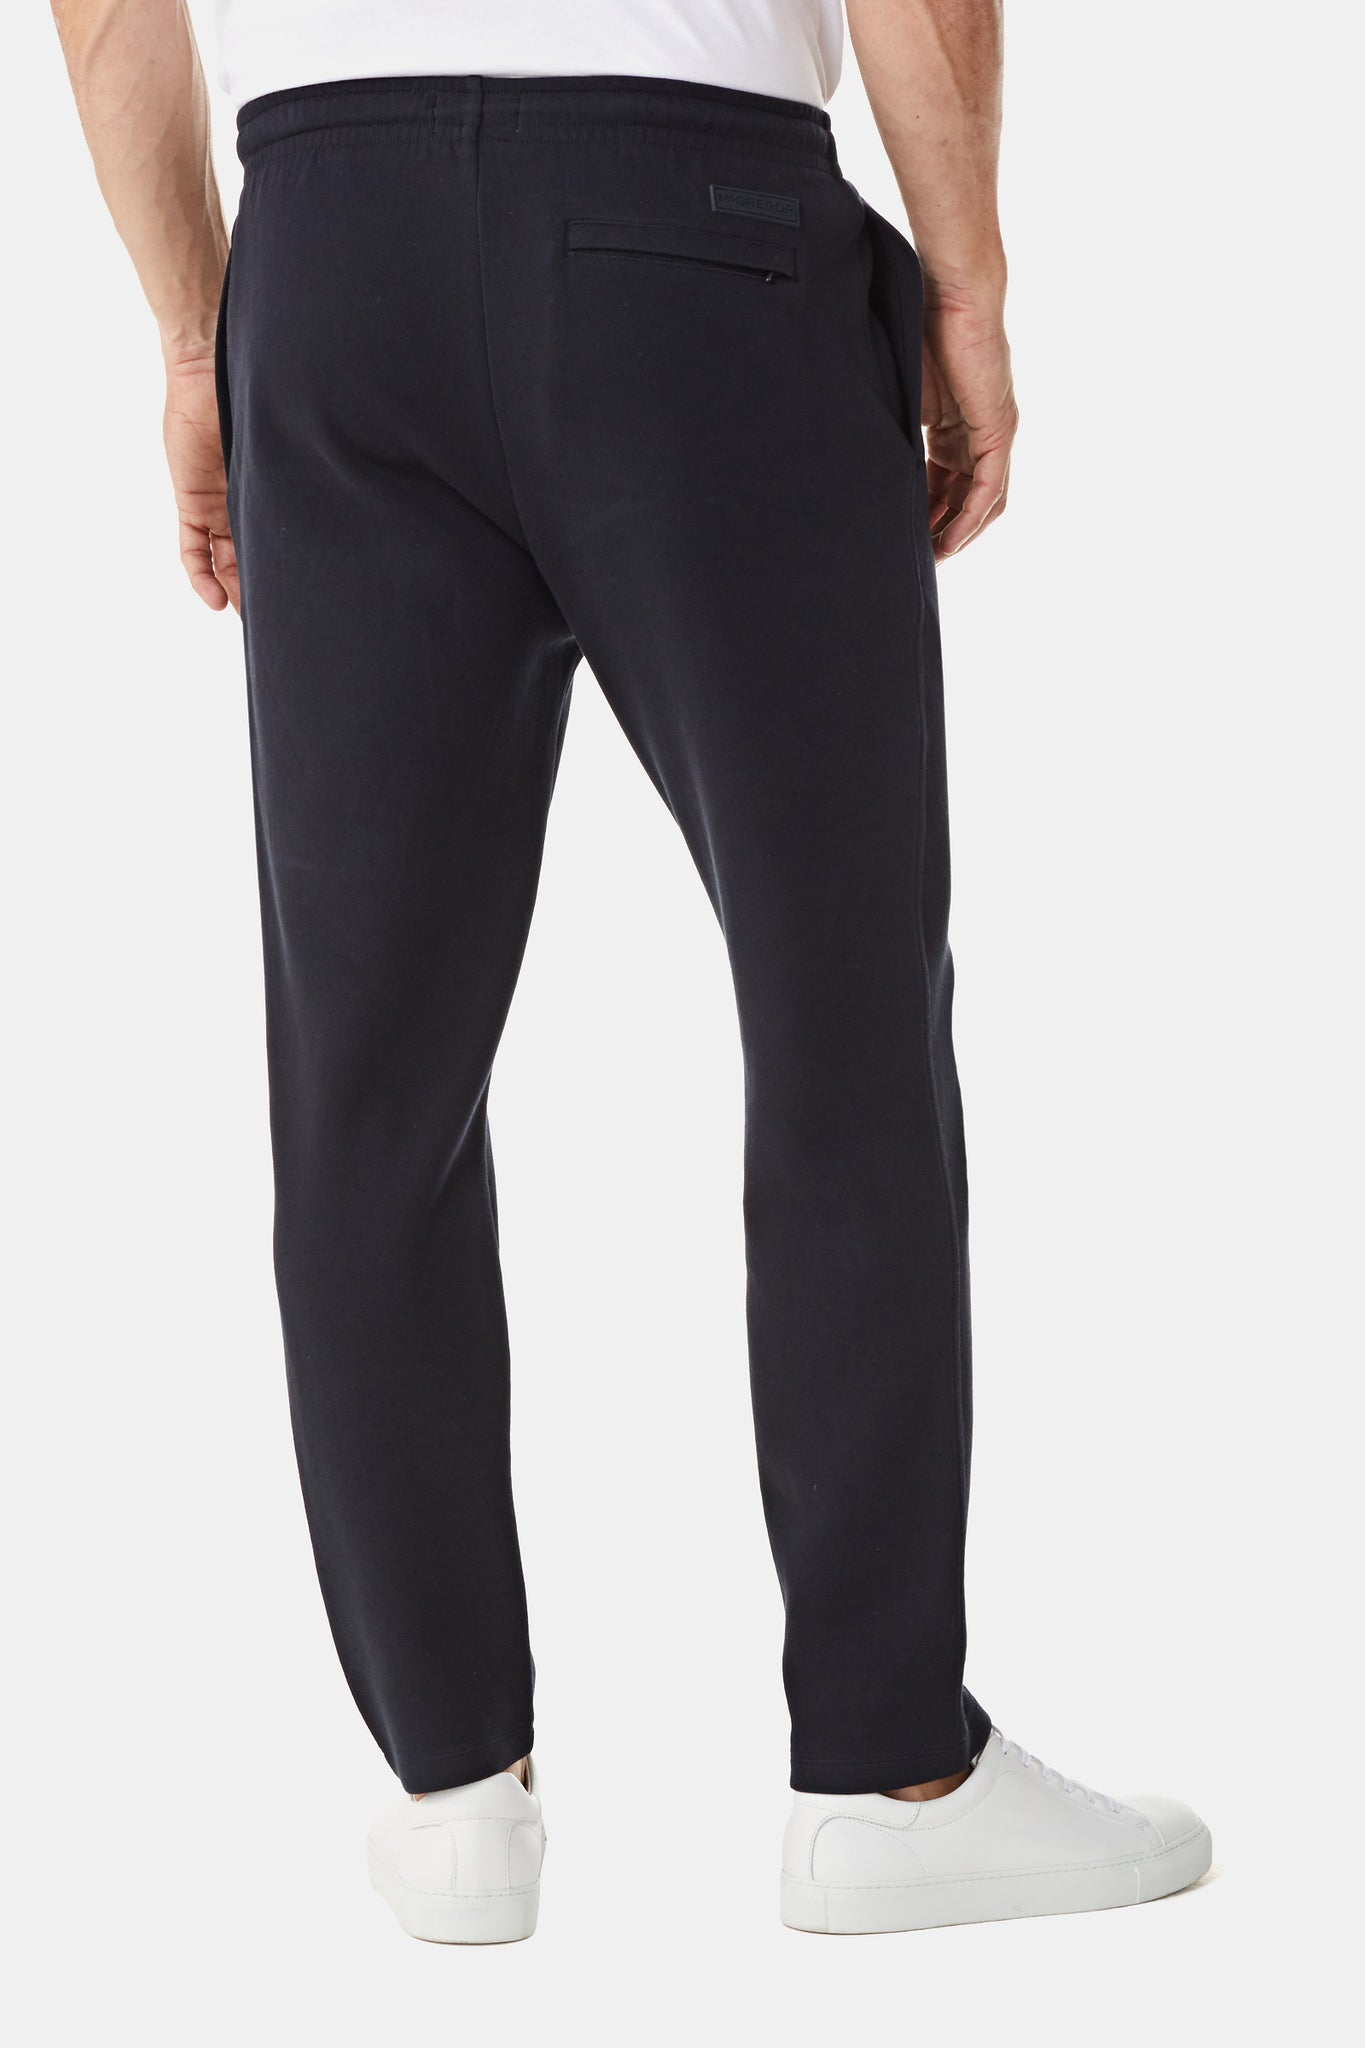 Cotton Pique Sweat Pant